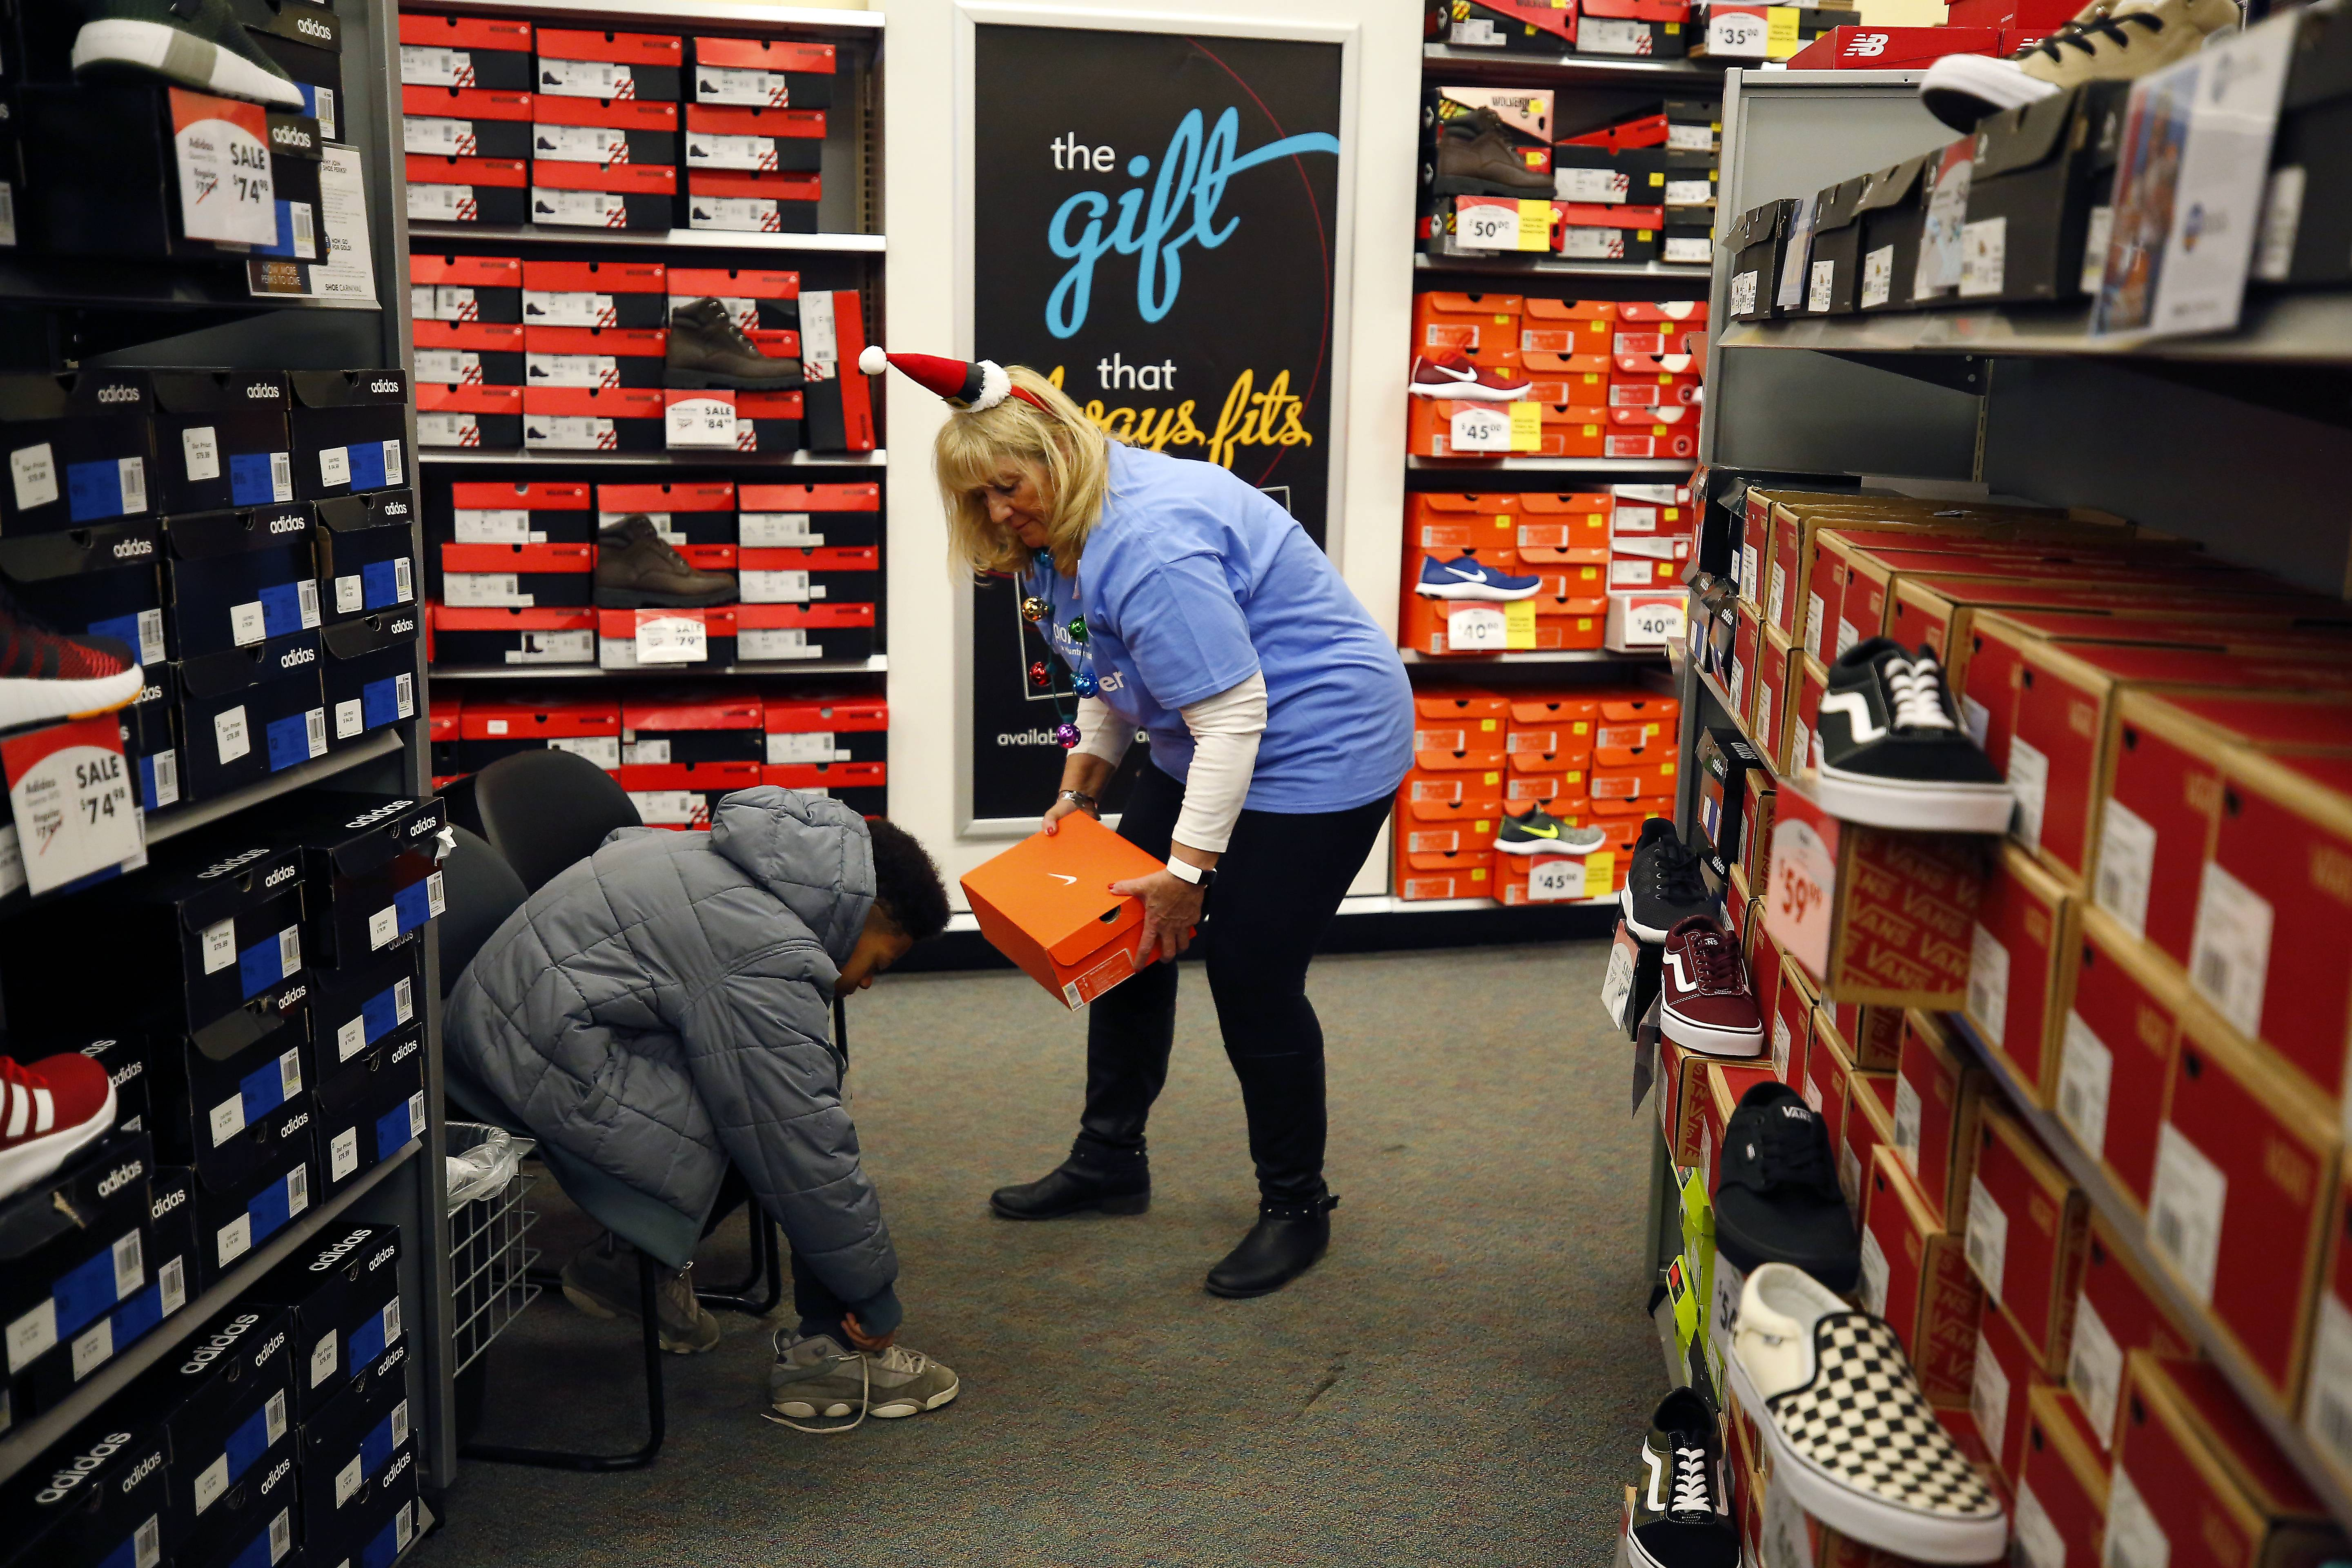 Jo Maniscalco of AT&T helps 11-year-old Darien Walls with a new pair of shoes Thursday at the Shoe Carnival in South Elgin. AT&T provided pairs of shoes to roughly 400 children in need from Elgin Area School District U-46 schools.